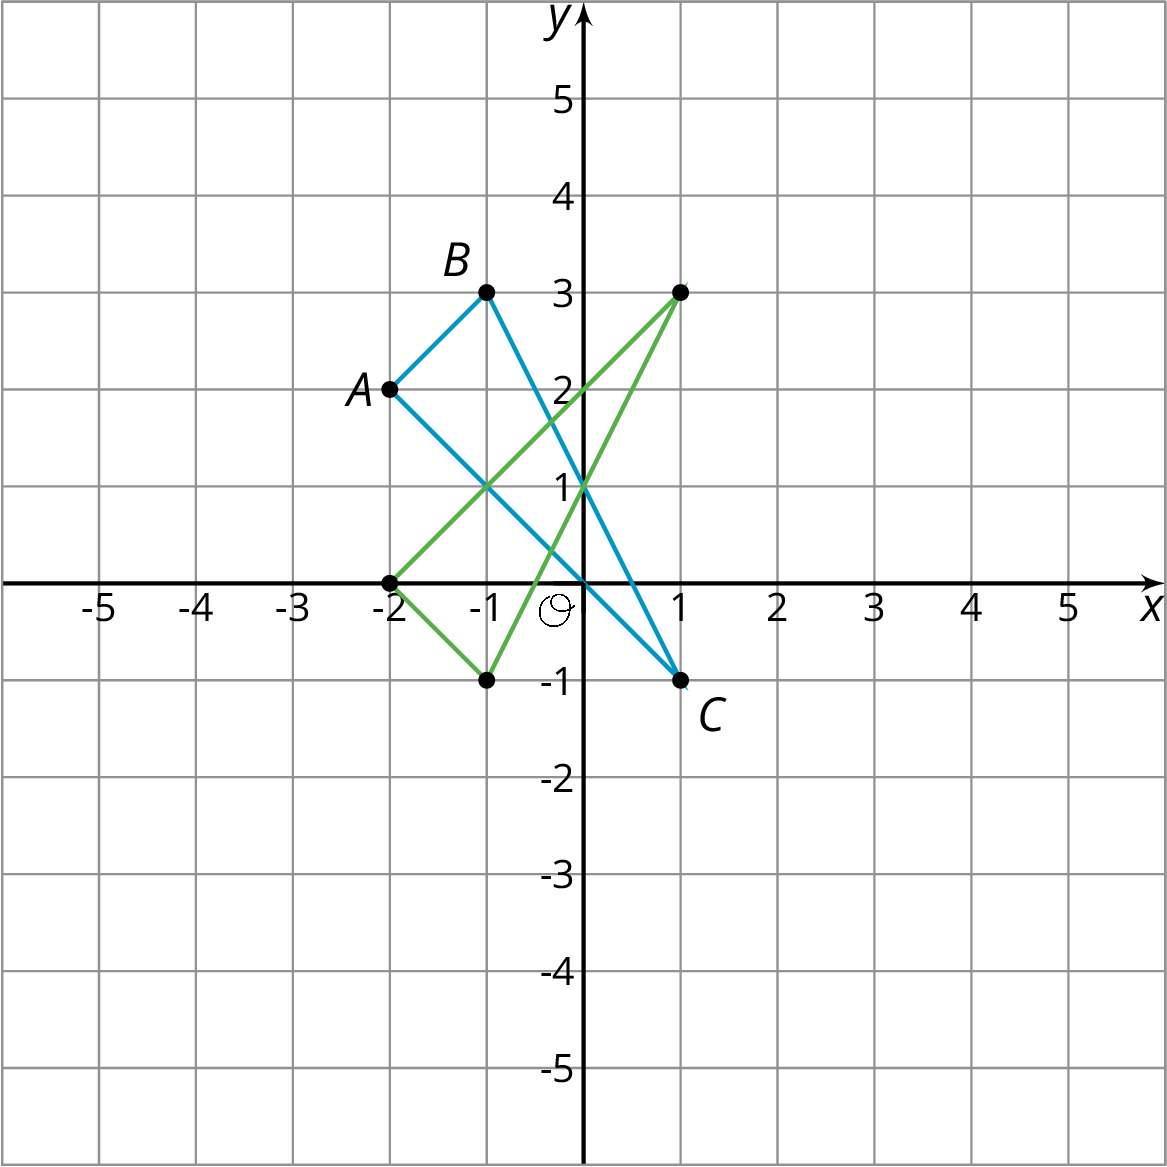 Triangle A B C on the x y plane with the origin labeled O. The numbers negative 5 through 5 appear on both the x axis and the y axis. Point A has the coordinates negative 2 comma 2. Point B has the coordinates negative 1 comma 3. Point C has the coordinates 1 comma negative 1.  A second triangle is drawn on the x y plane.The second triangle has the points with following coordinates: negative 1 comma negative 1, negative 2 comma 0, and 1 comma negative 3.